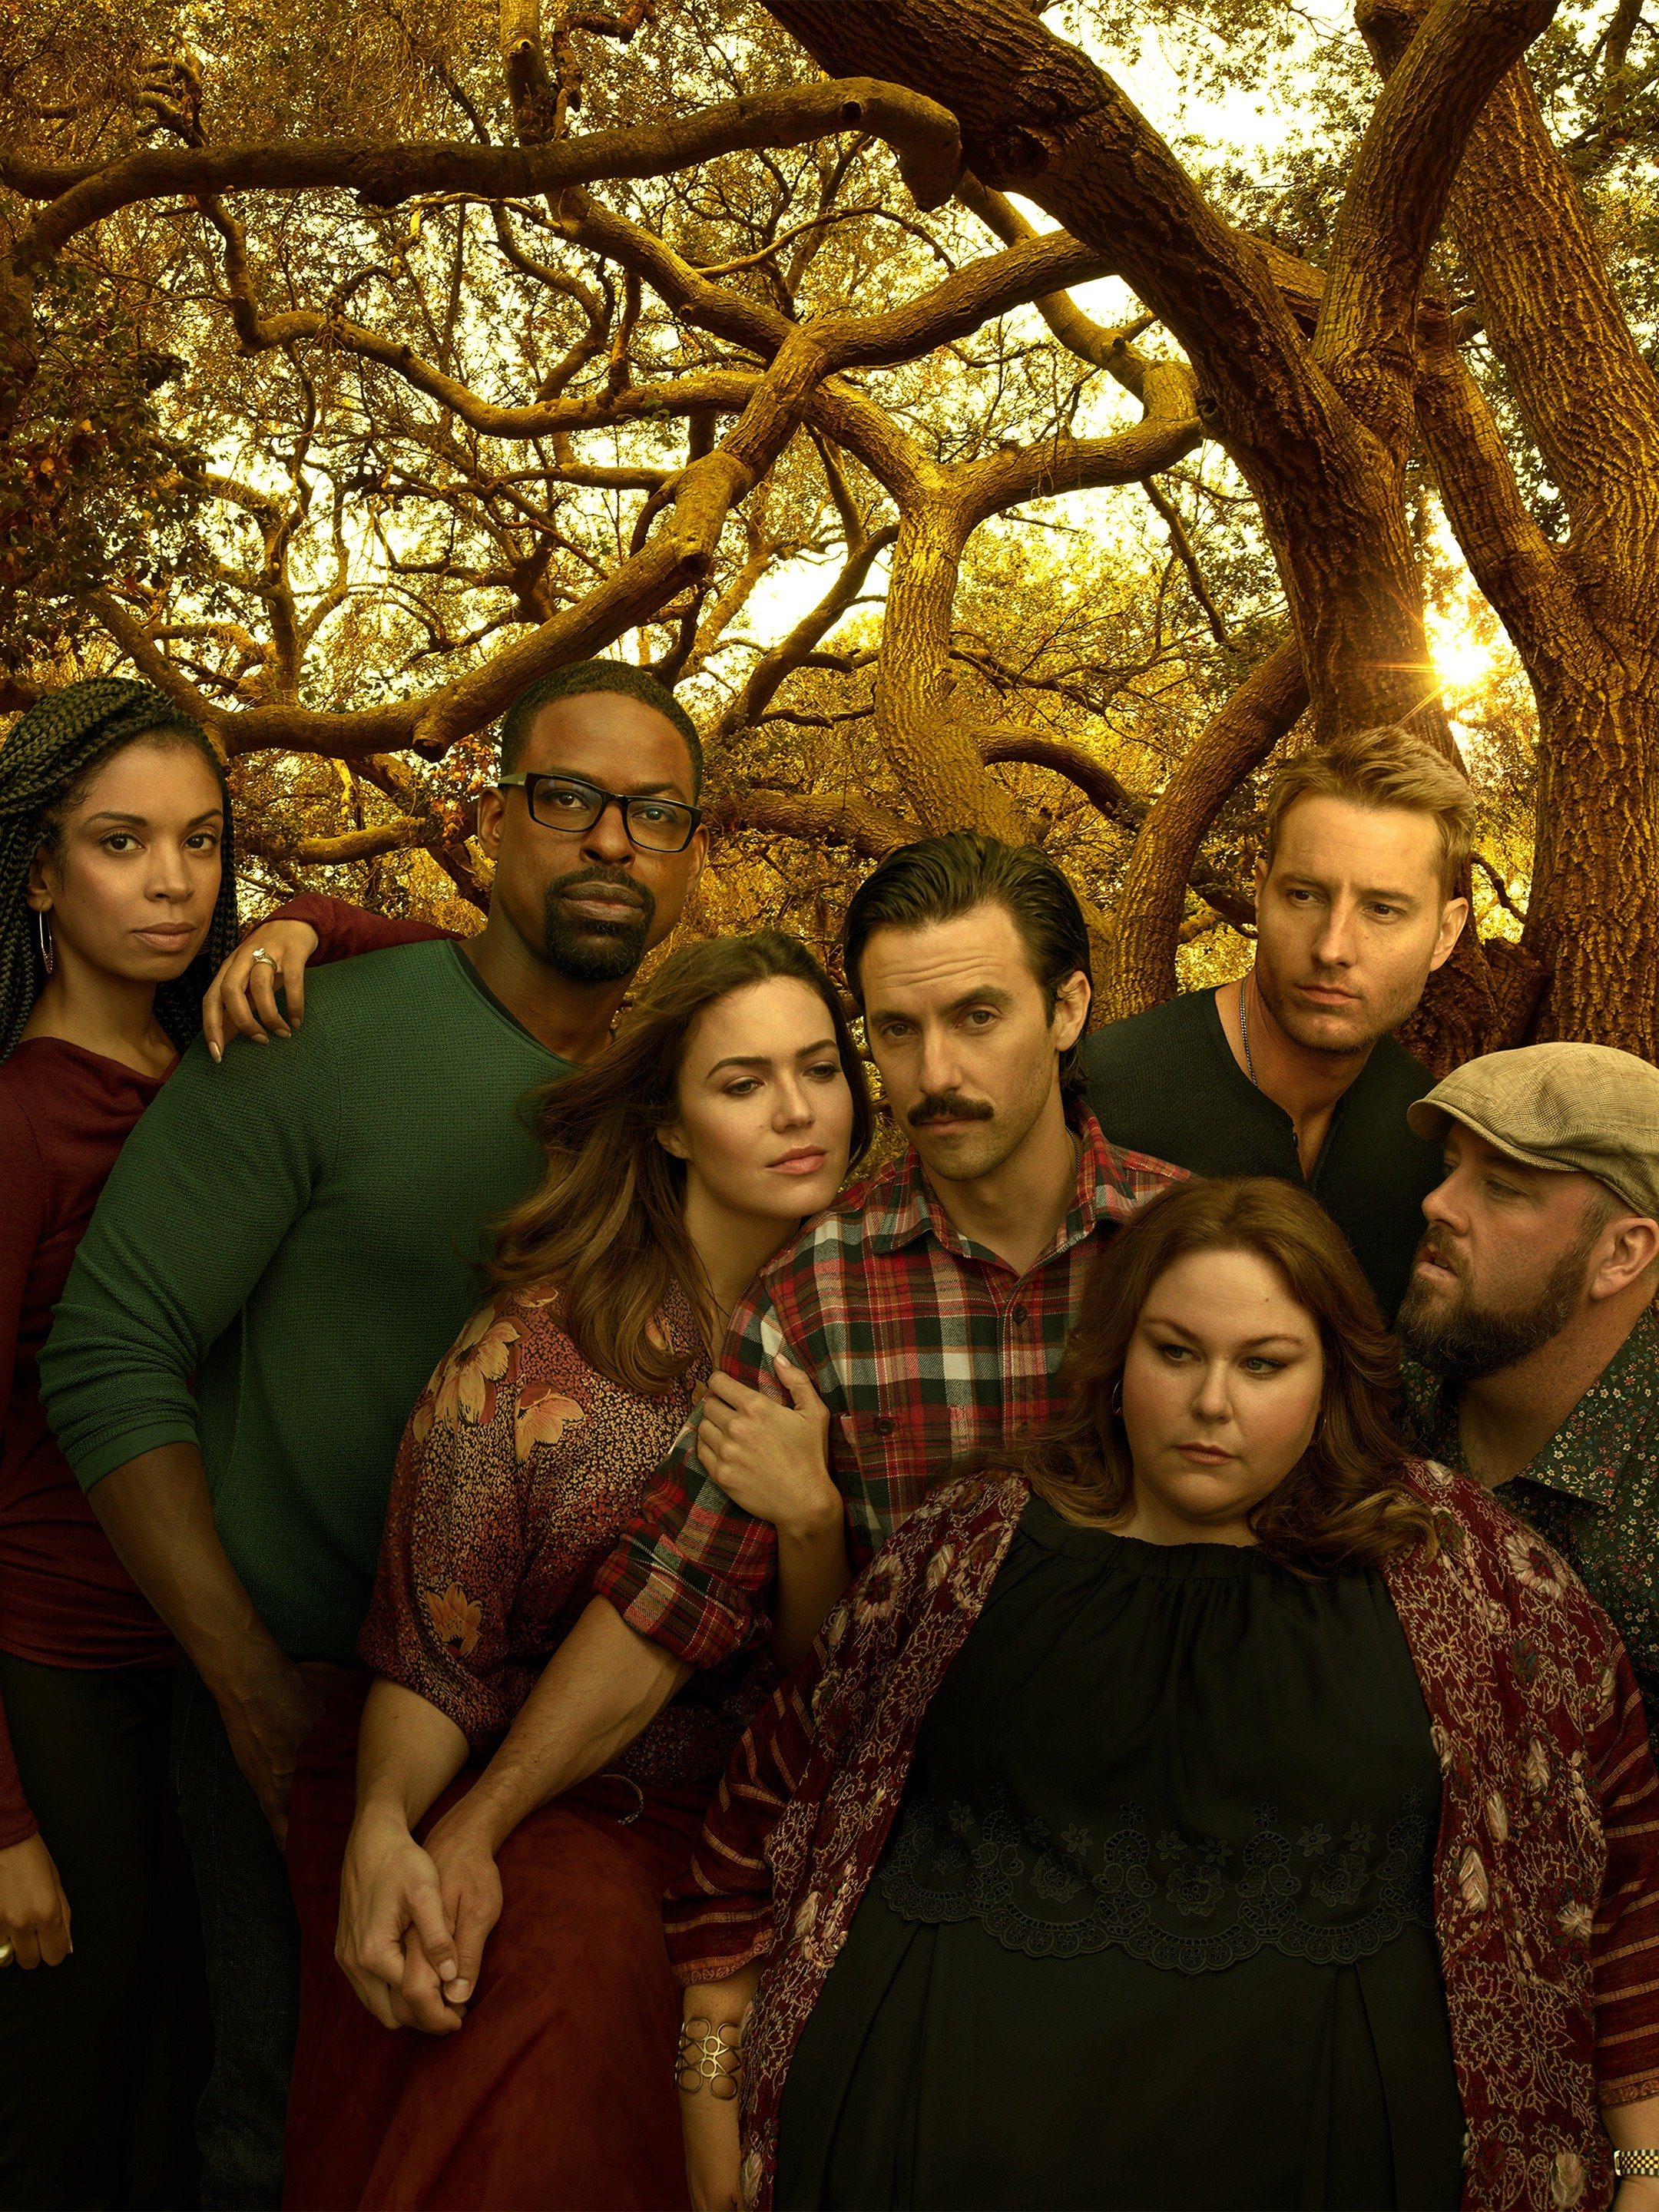 Awesome This Is Us Rotten Tomatoes Season 3 wallpapers to download for free greenvirals